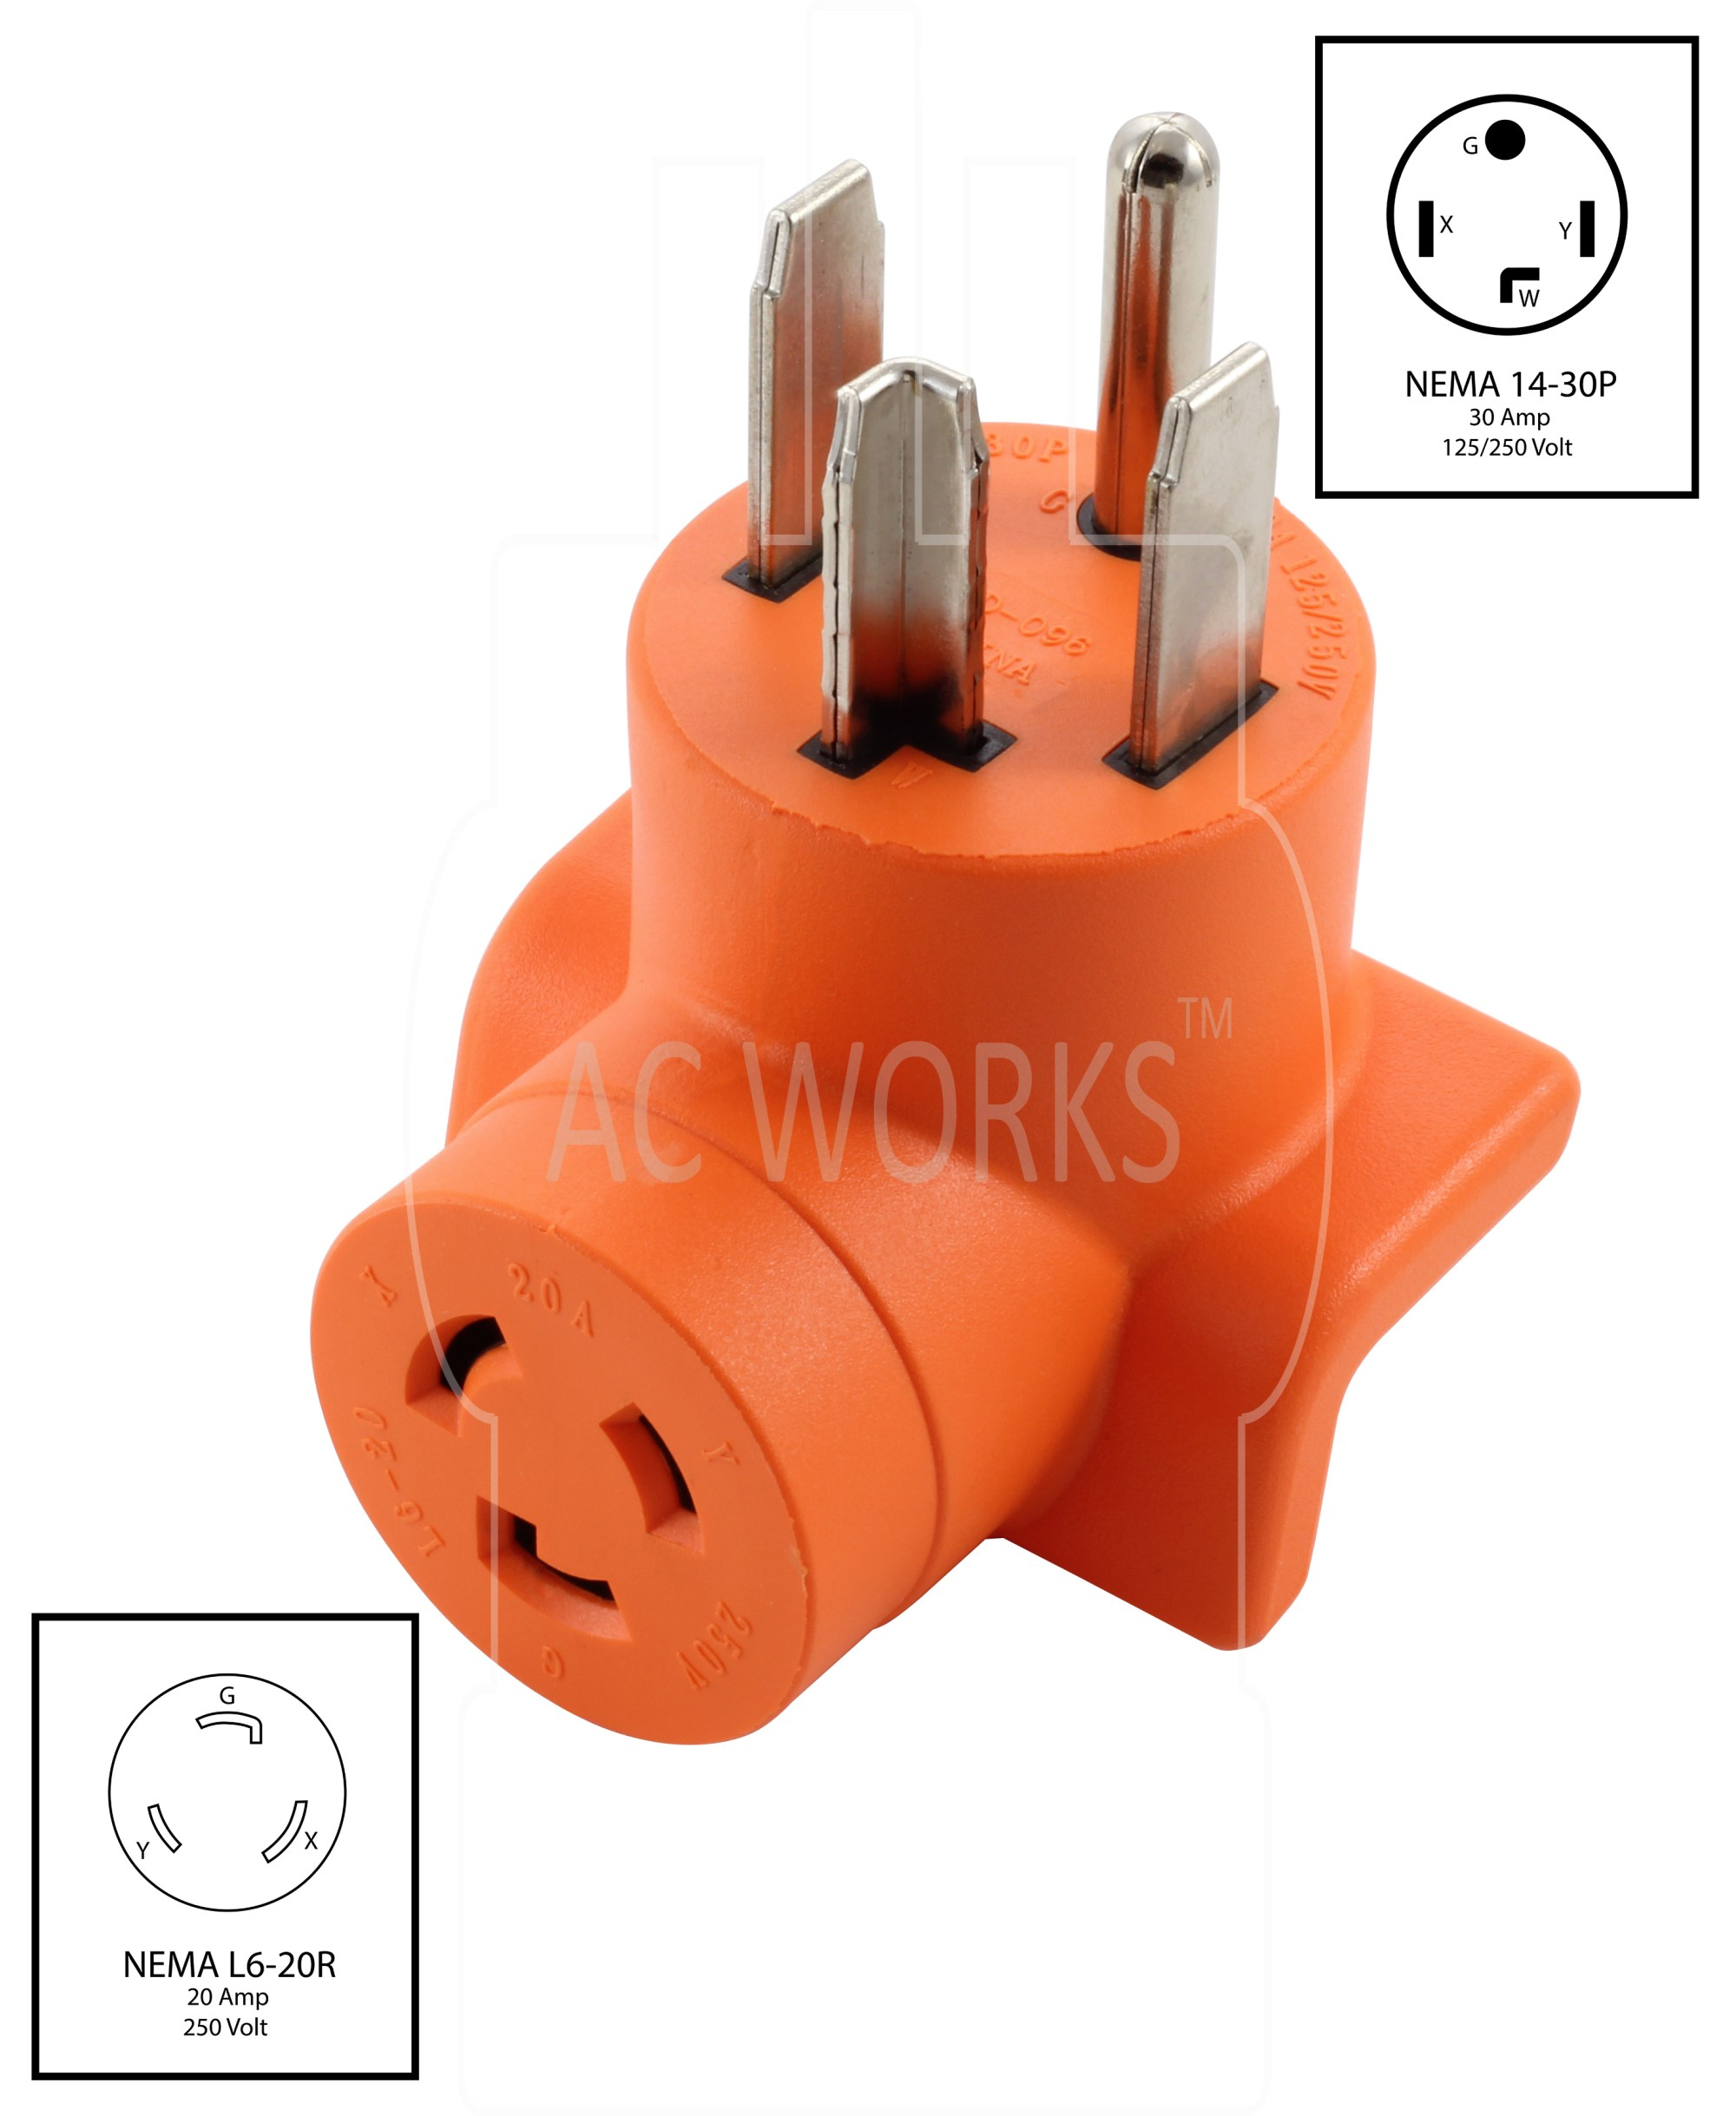 hight resolution of ac works ad1430l620 dryer outlet adapter nema 14 30p 30amp dryer plug to l6 20r 20amp 250volt locking female connector walmart com